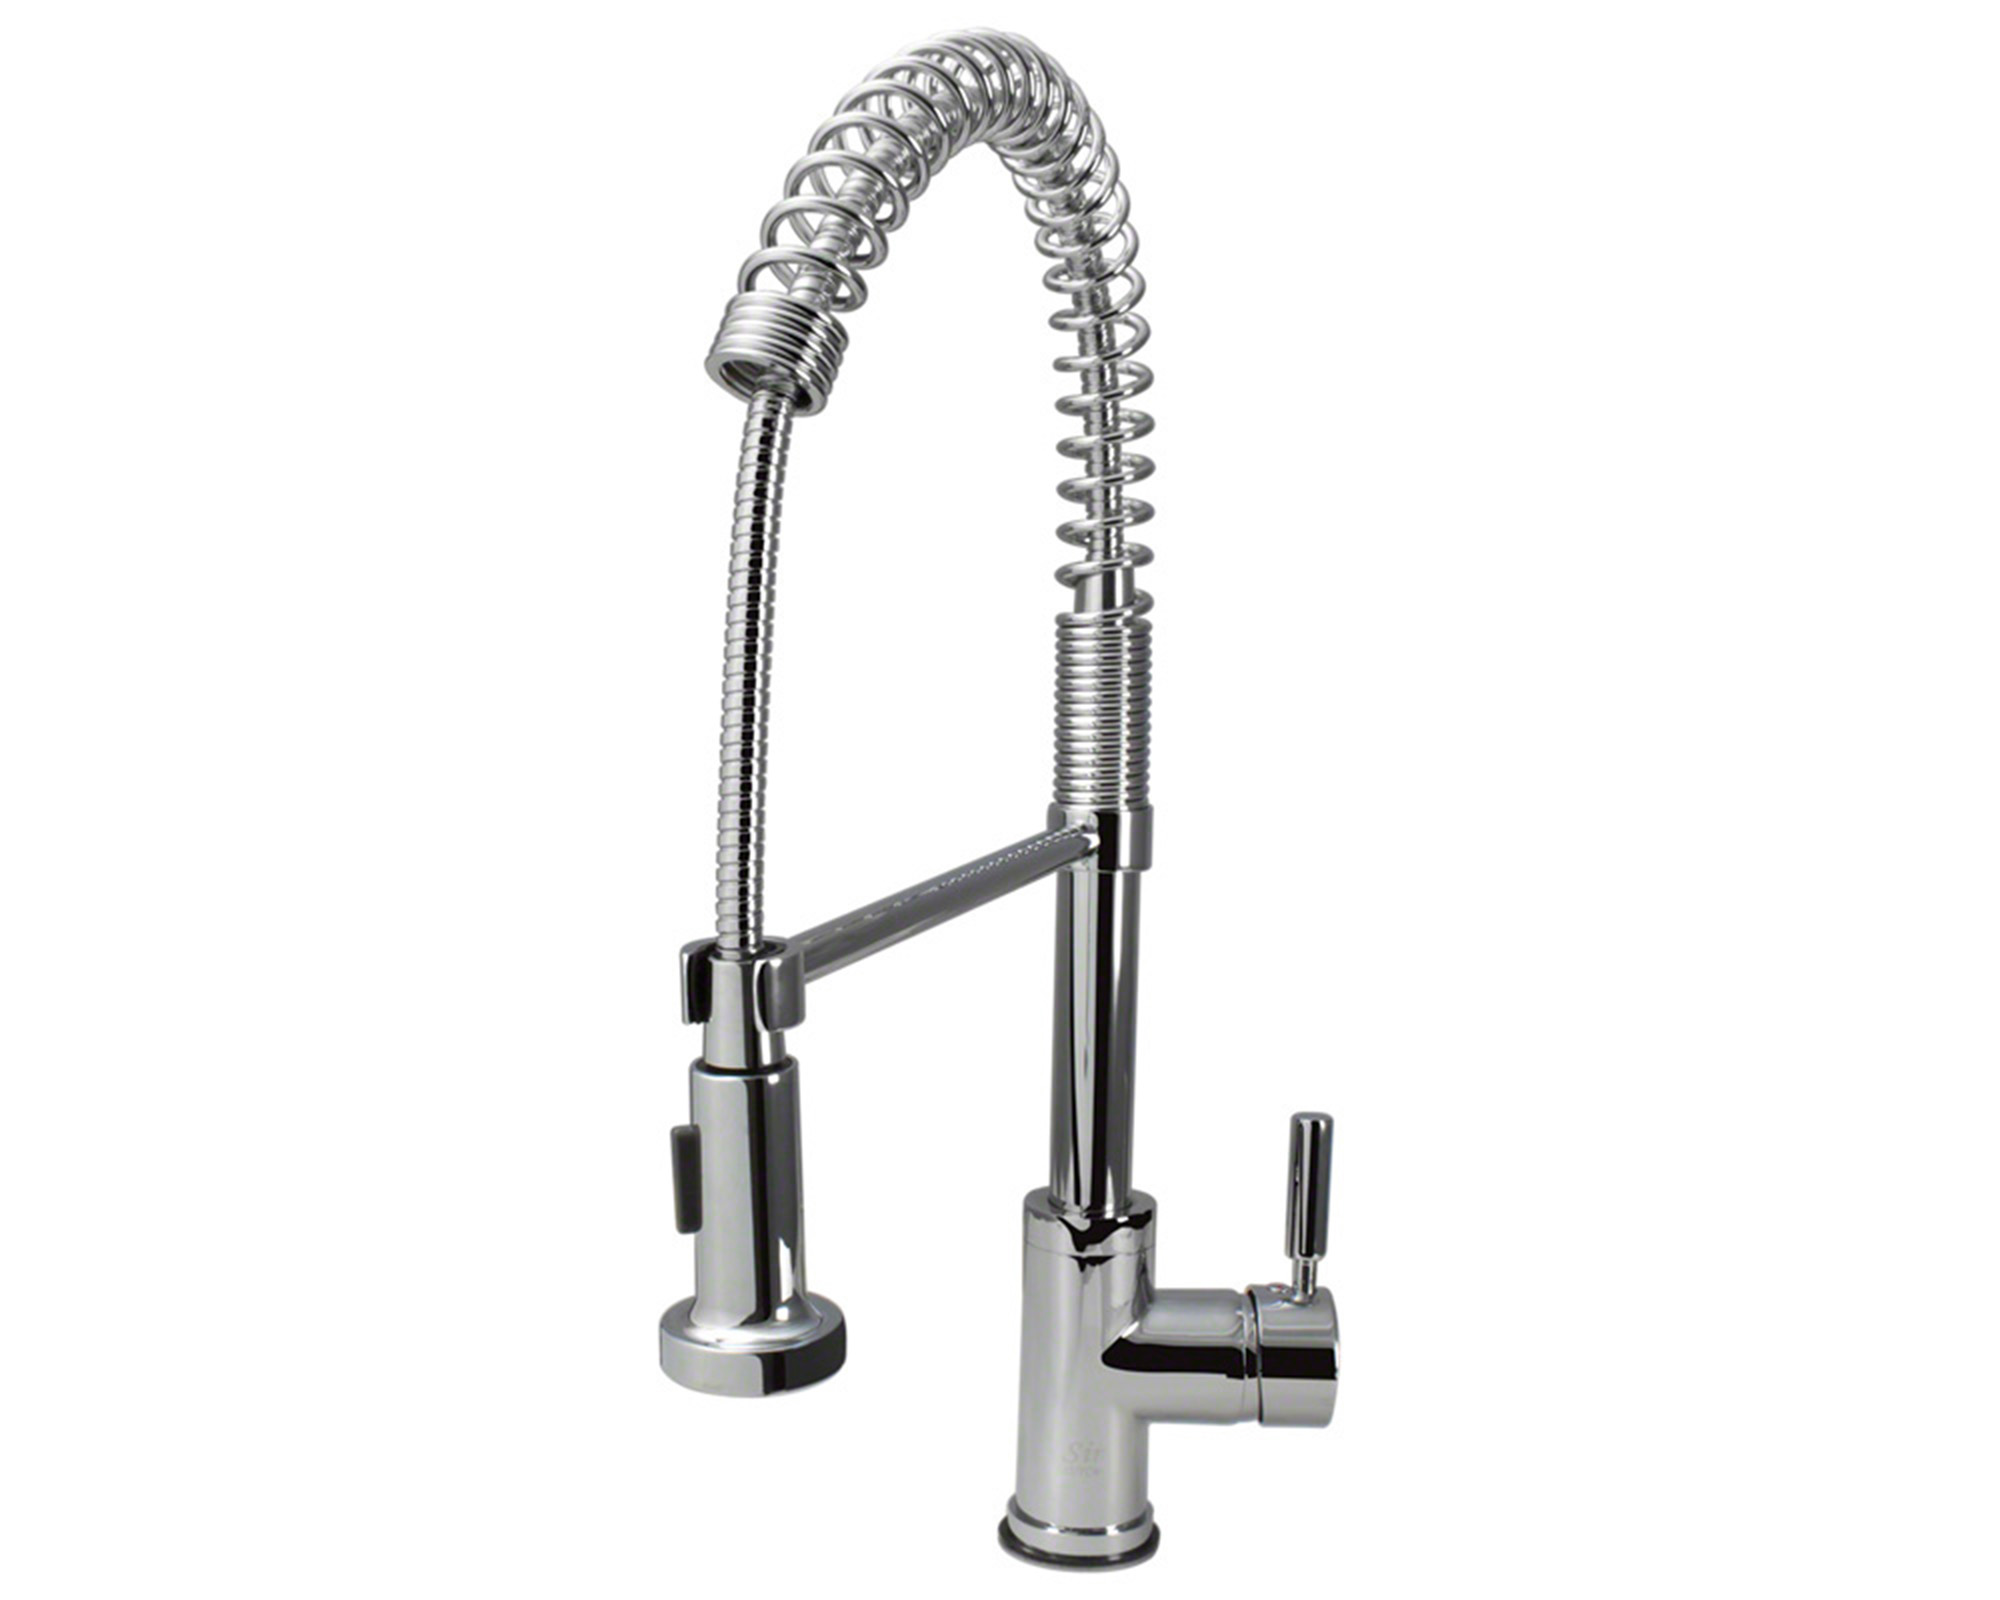 766-C Chrome Spring Spout Kitchen Faucet